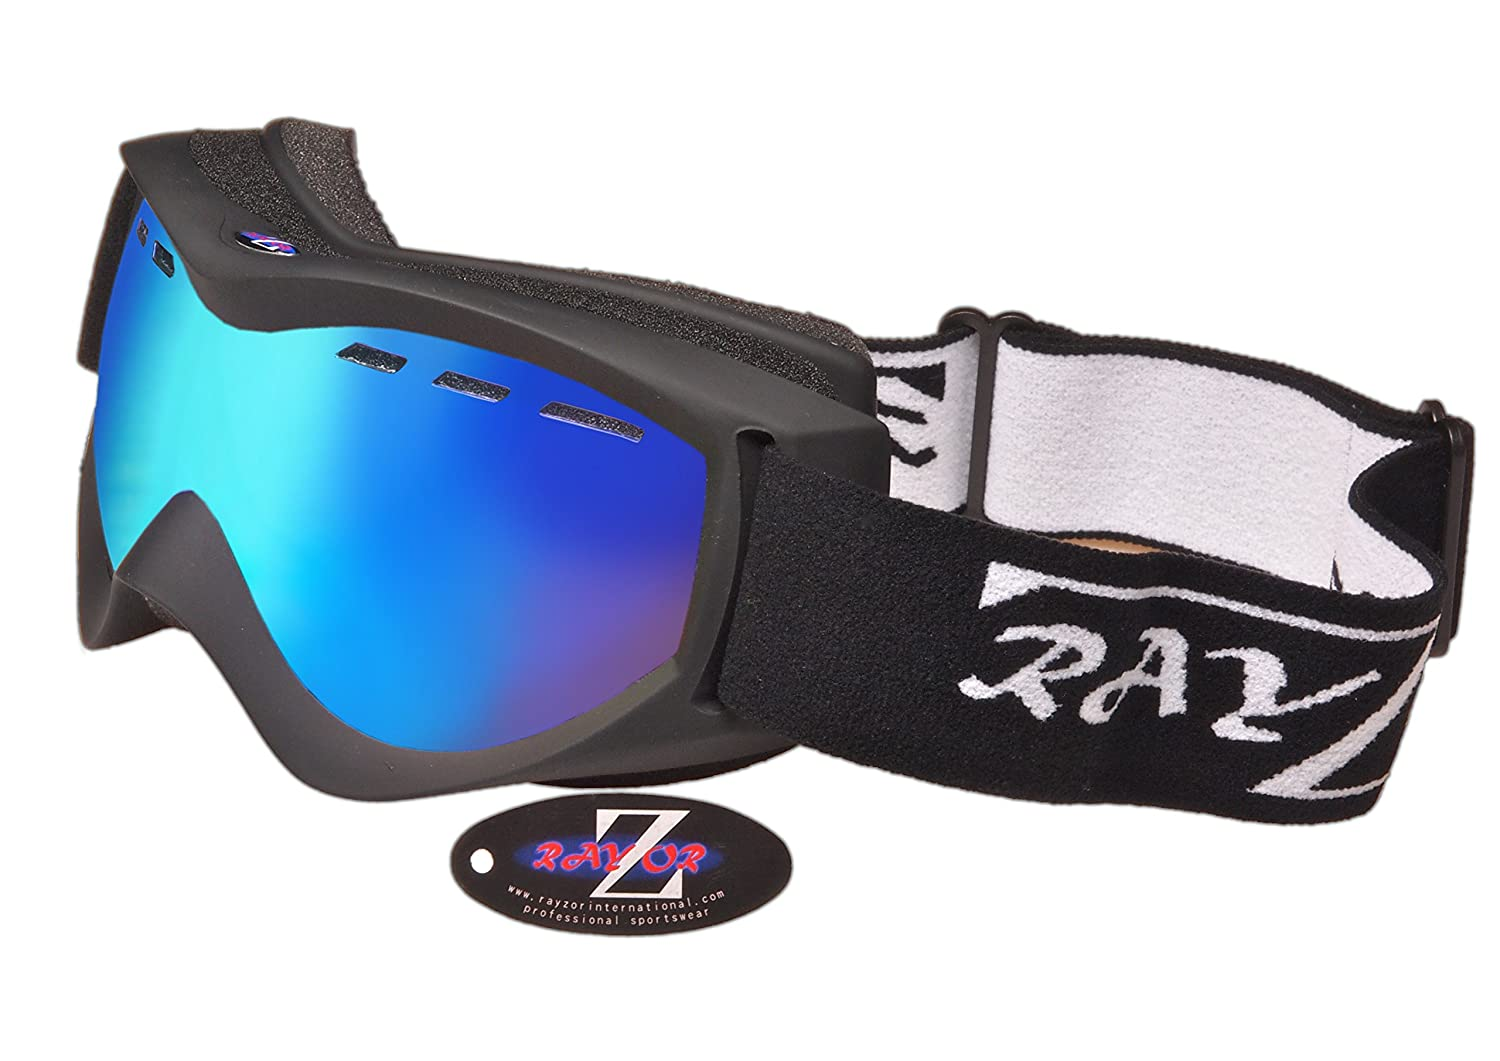 Anti Fog Ventilated Skiing and Snowboard Goggles Snowmobiles and Snowboards Comfortable Anti Glare Vented Snow Eyewear Rayzor Ski Snowboarding Goggles Shatterproof For Skis UV400 Protection